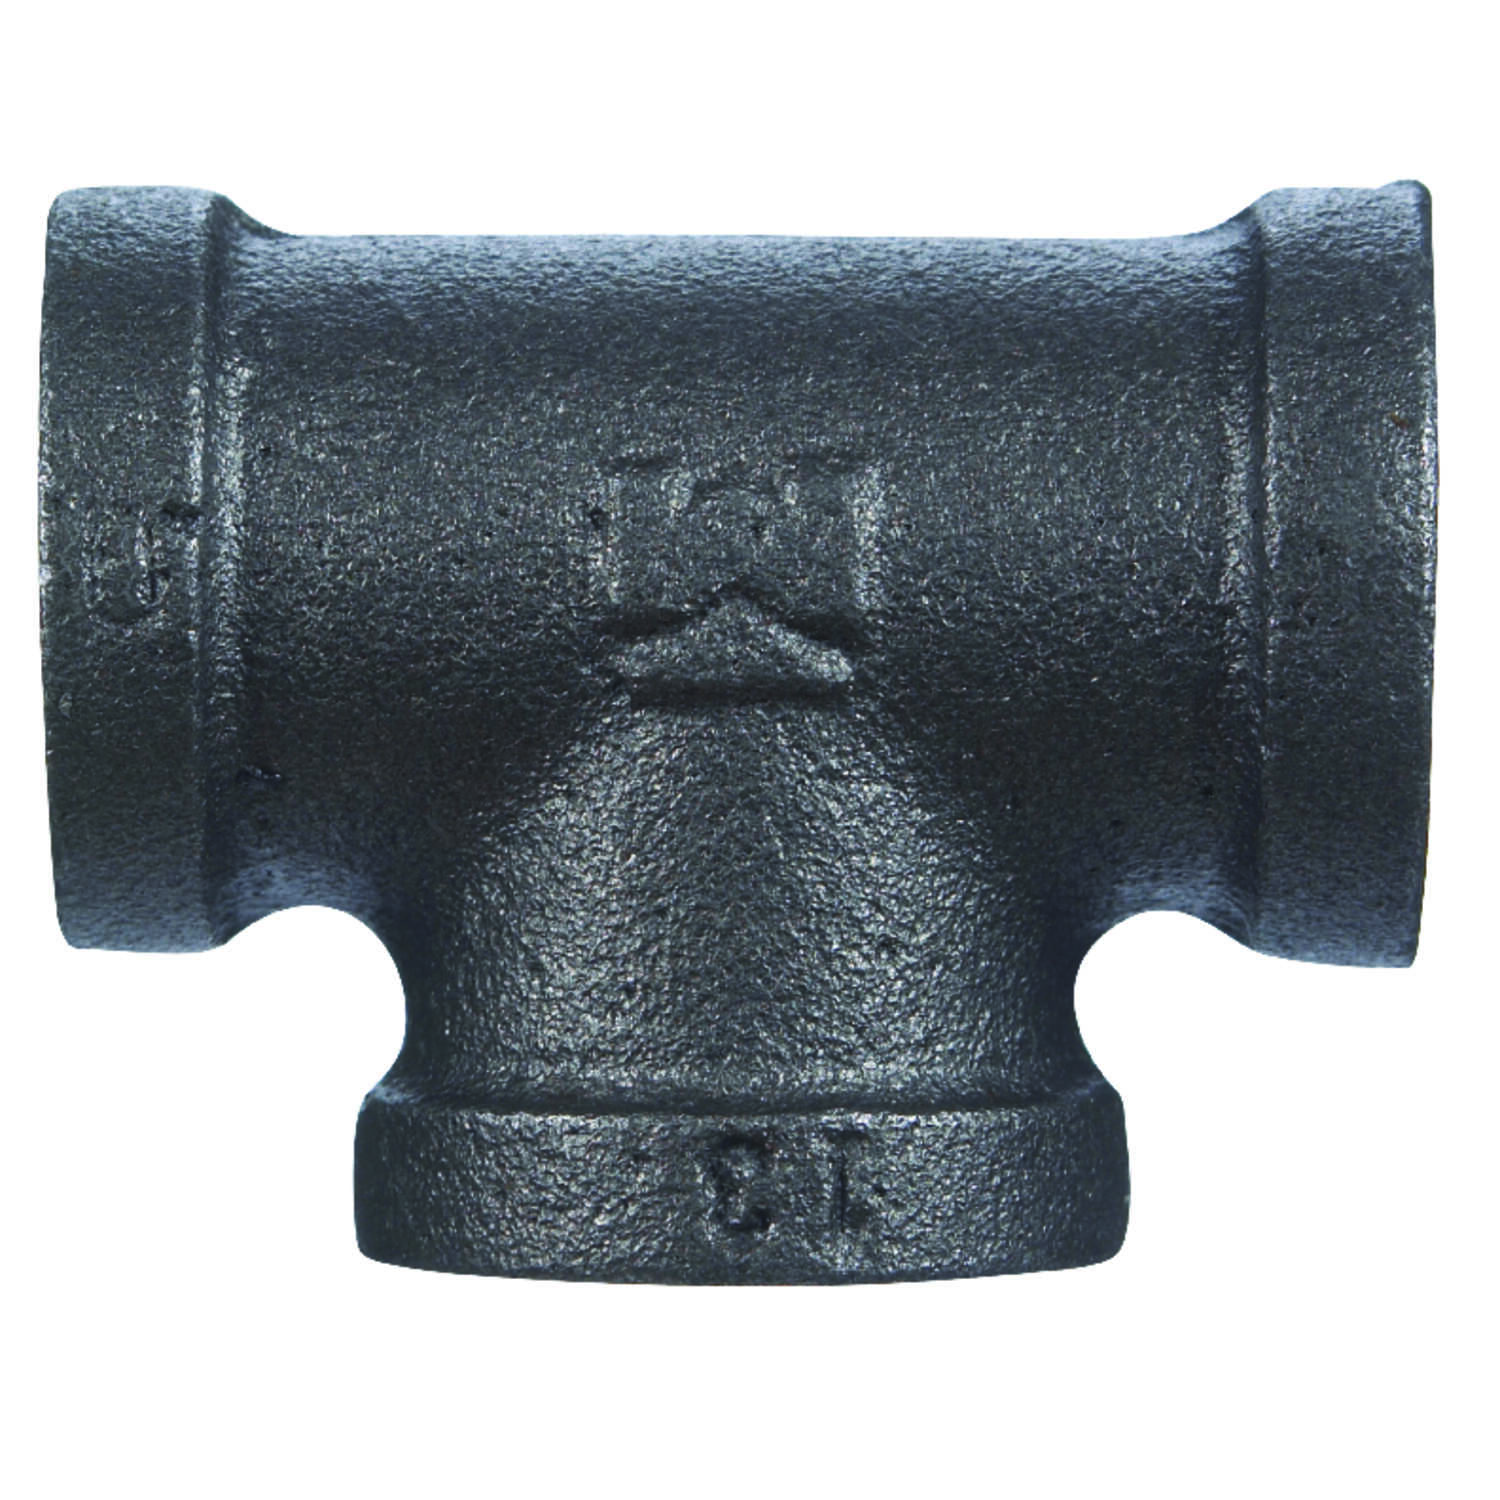 B & K  3/8 in. FPT   x 3/8 in. Dia. FPT  Black  Malleable Iron  Tee